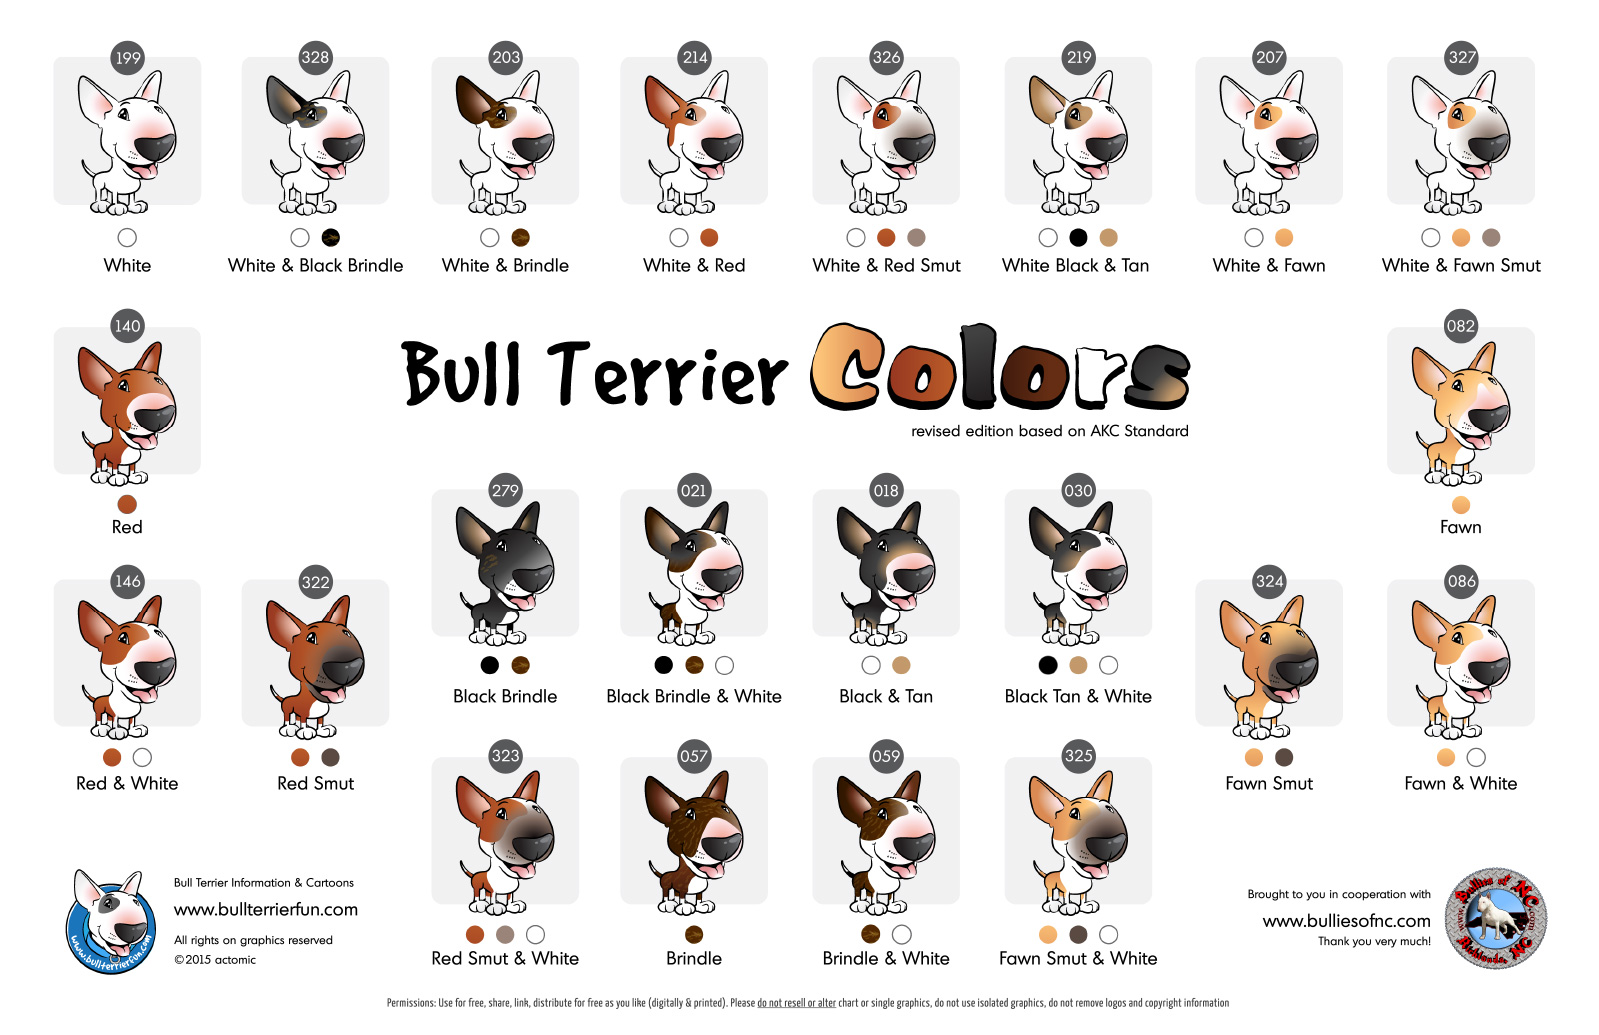 Bull terrier colors reference chart bull terrier colors nvjuhfo Images